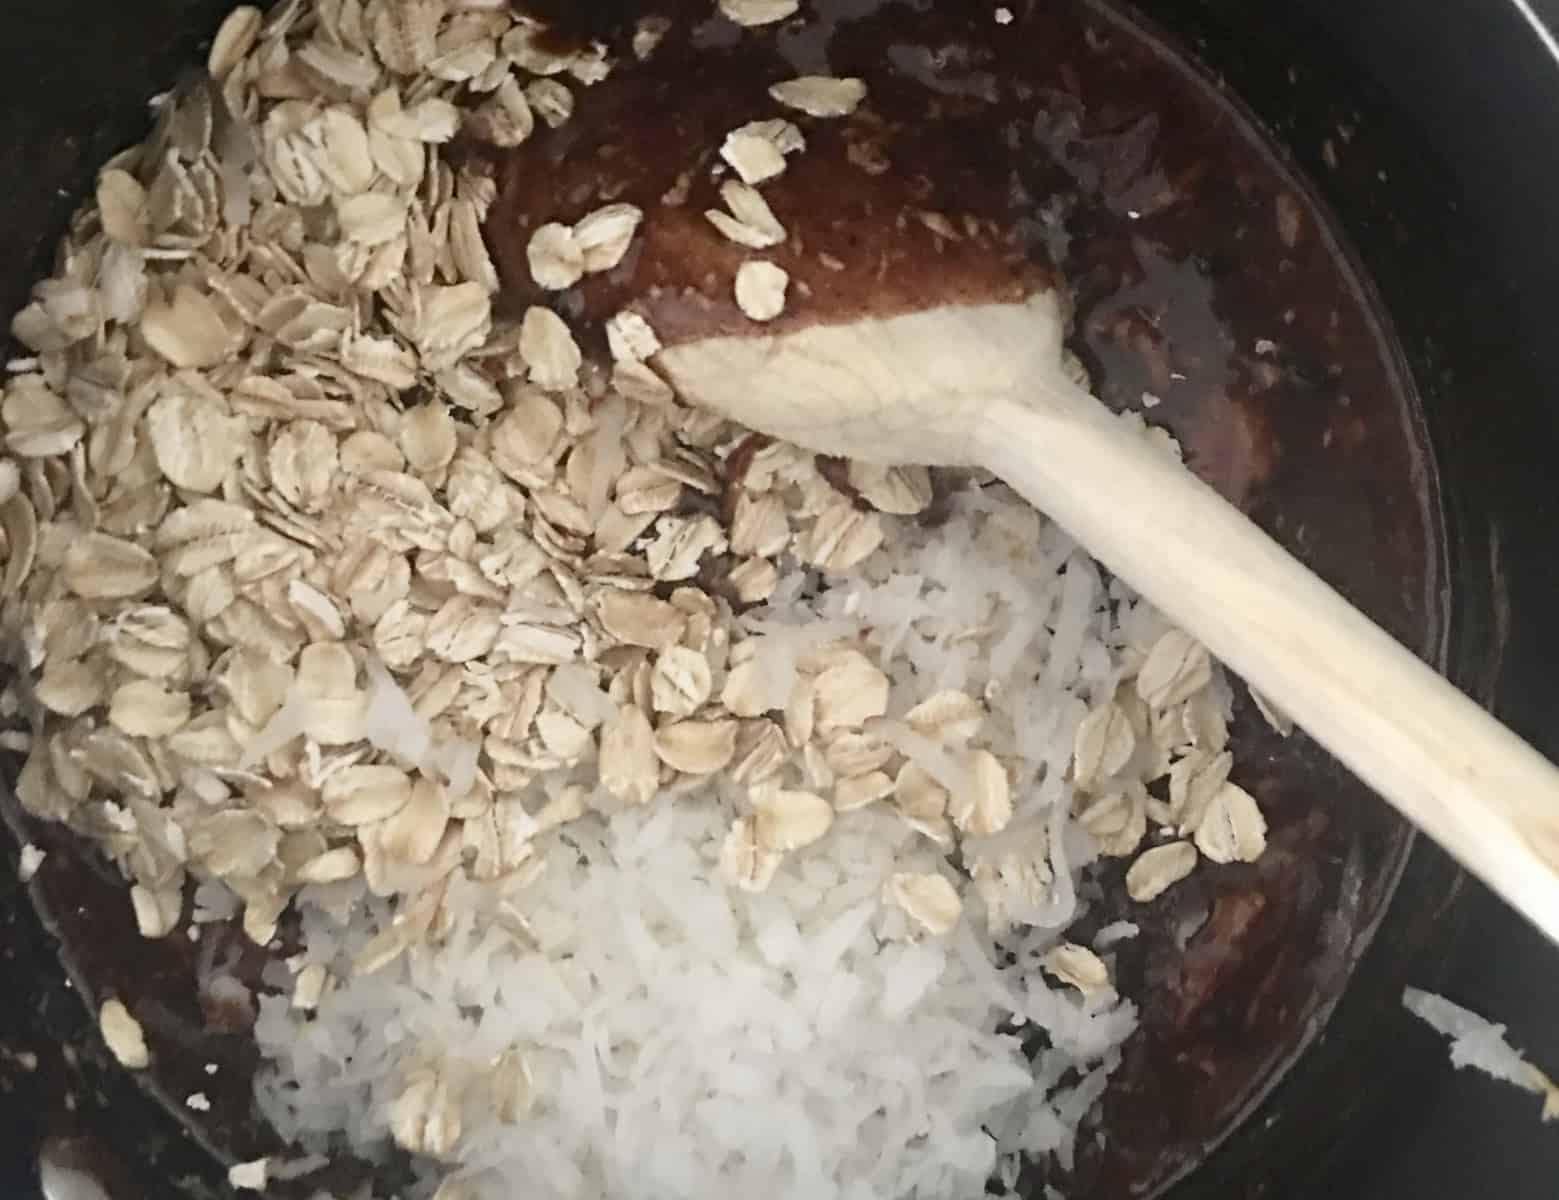 stirring in coconut and rolled oats in the saucepan mixture.